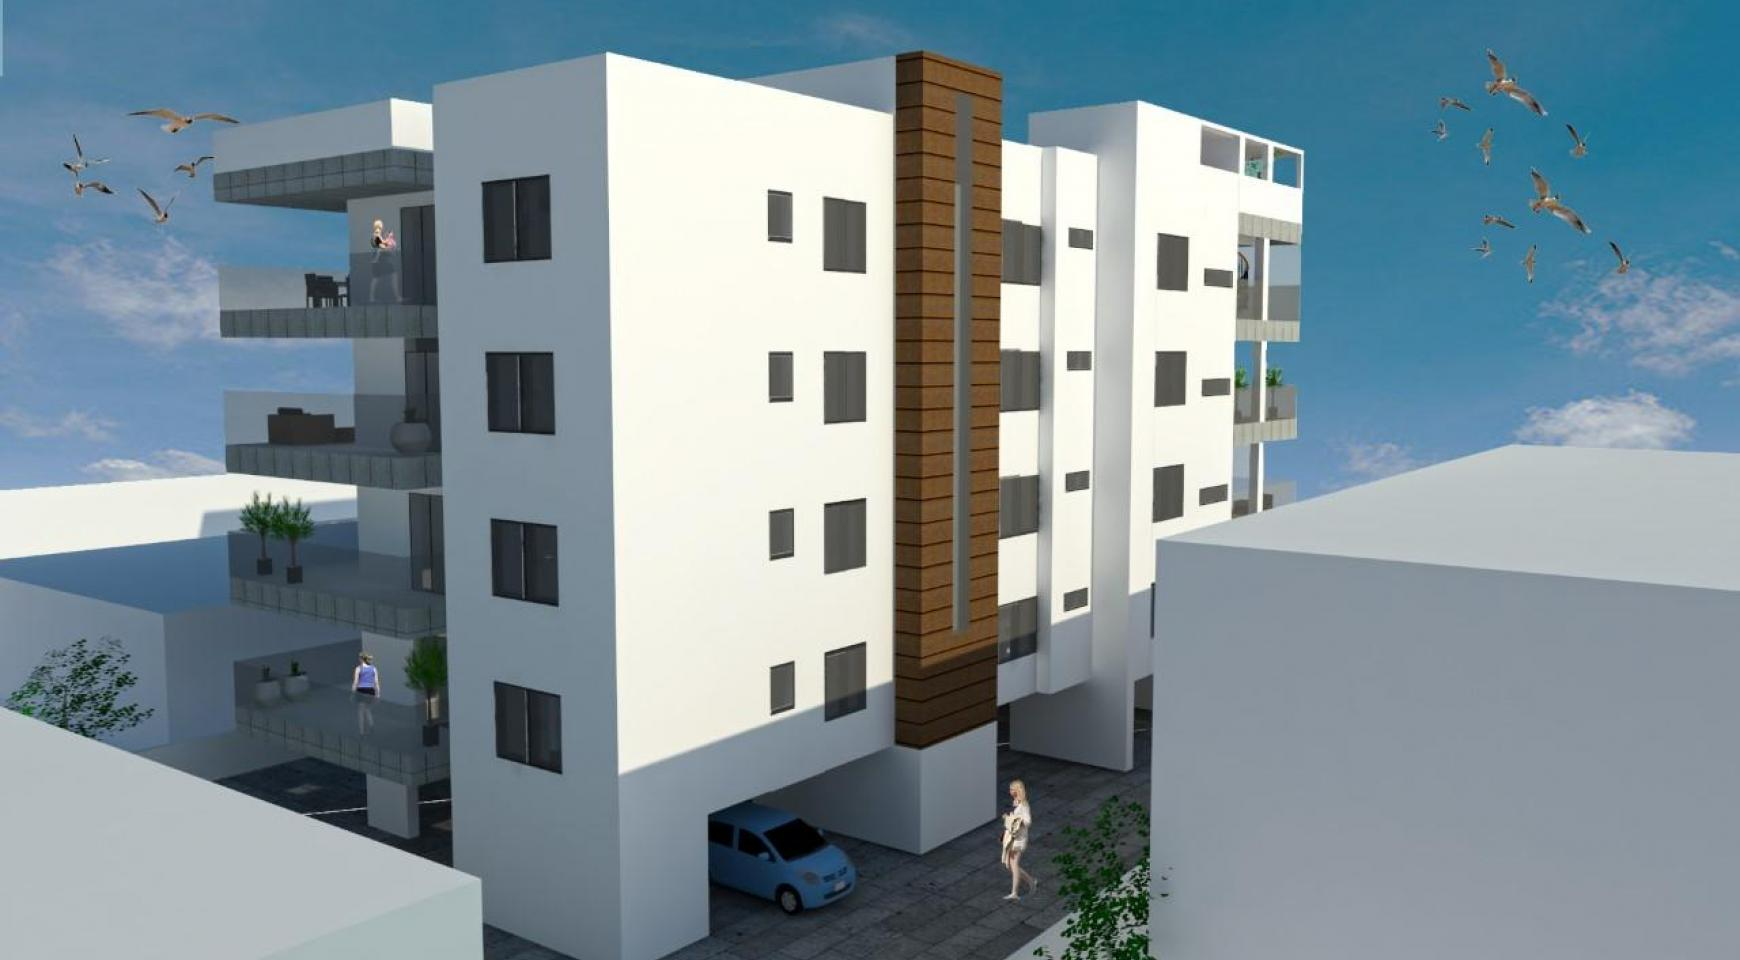 New 2 Bedroom Apartment with Roof Garden in a Contemporary Building in the Town Centre - 3